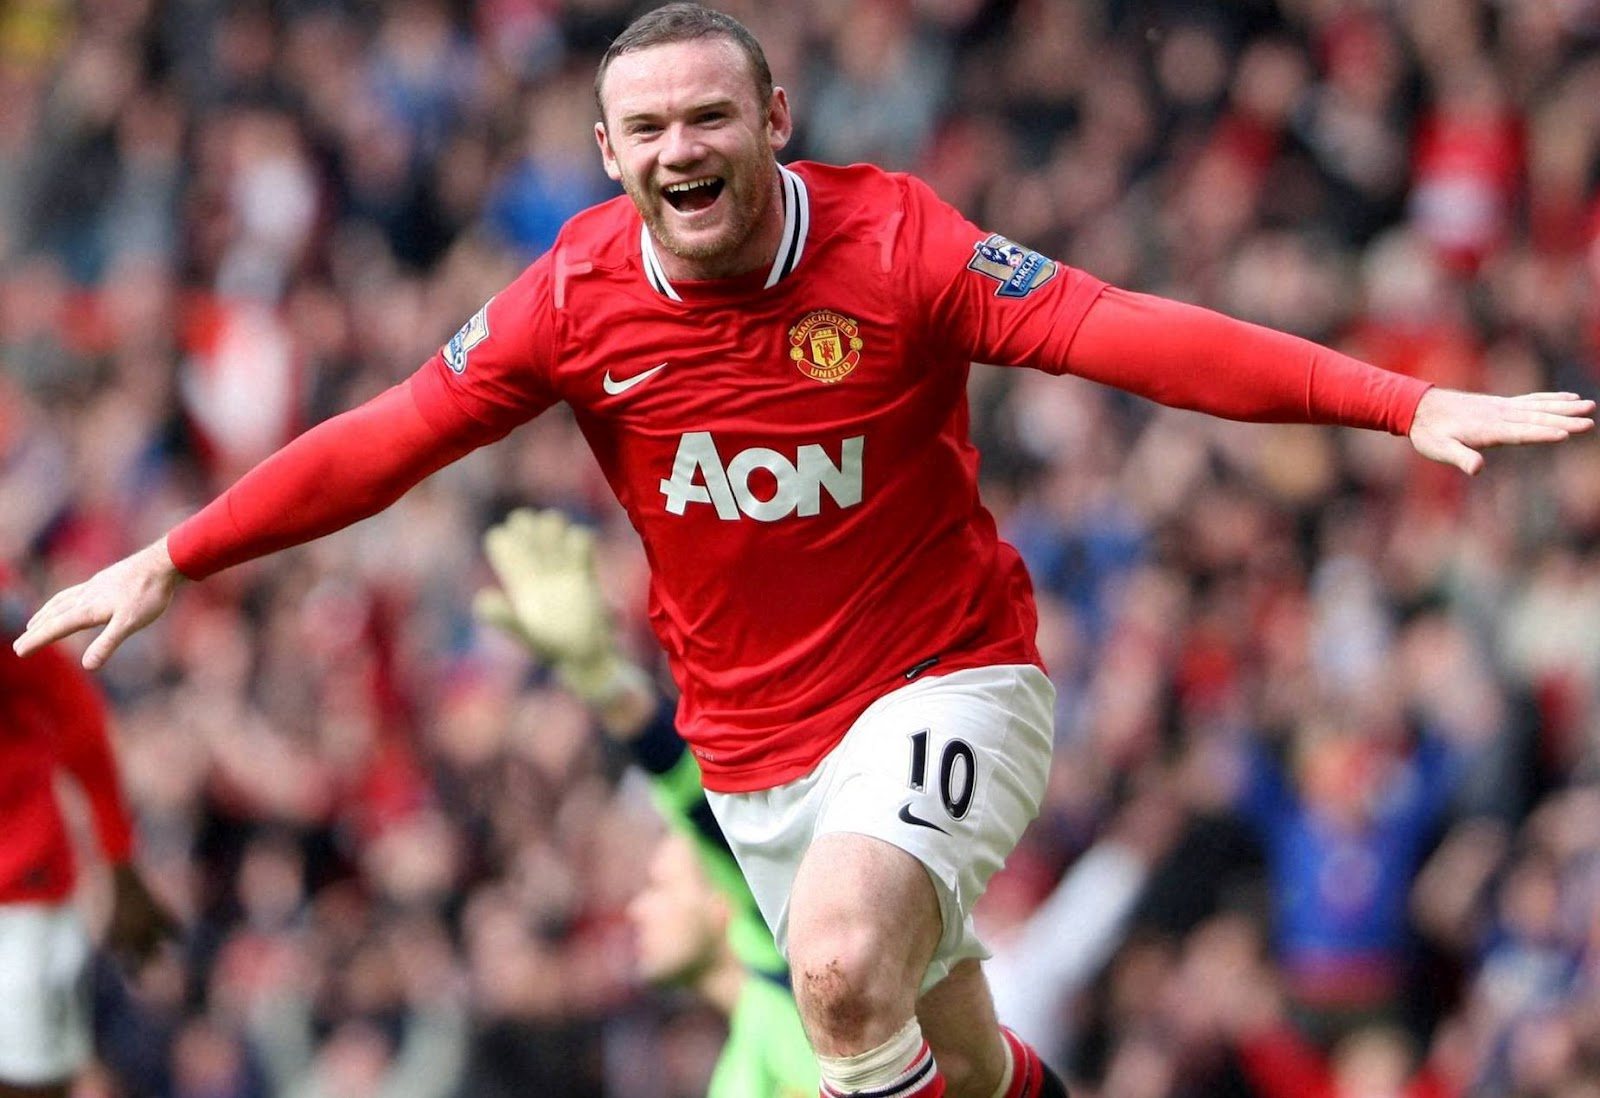 Wayne Rooney Football